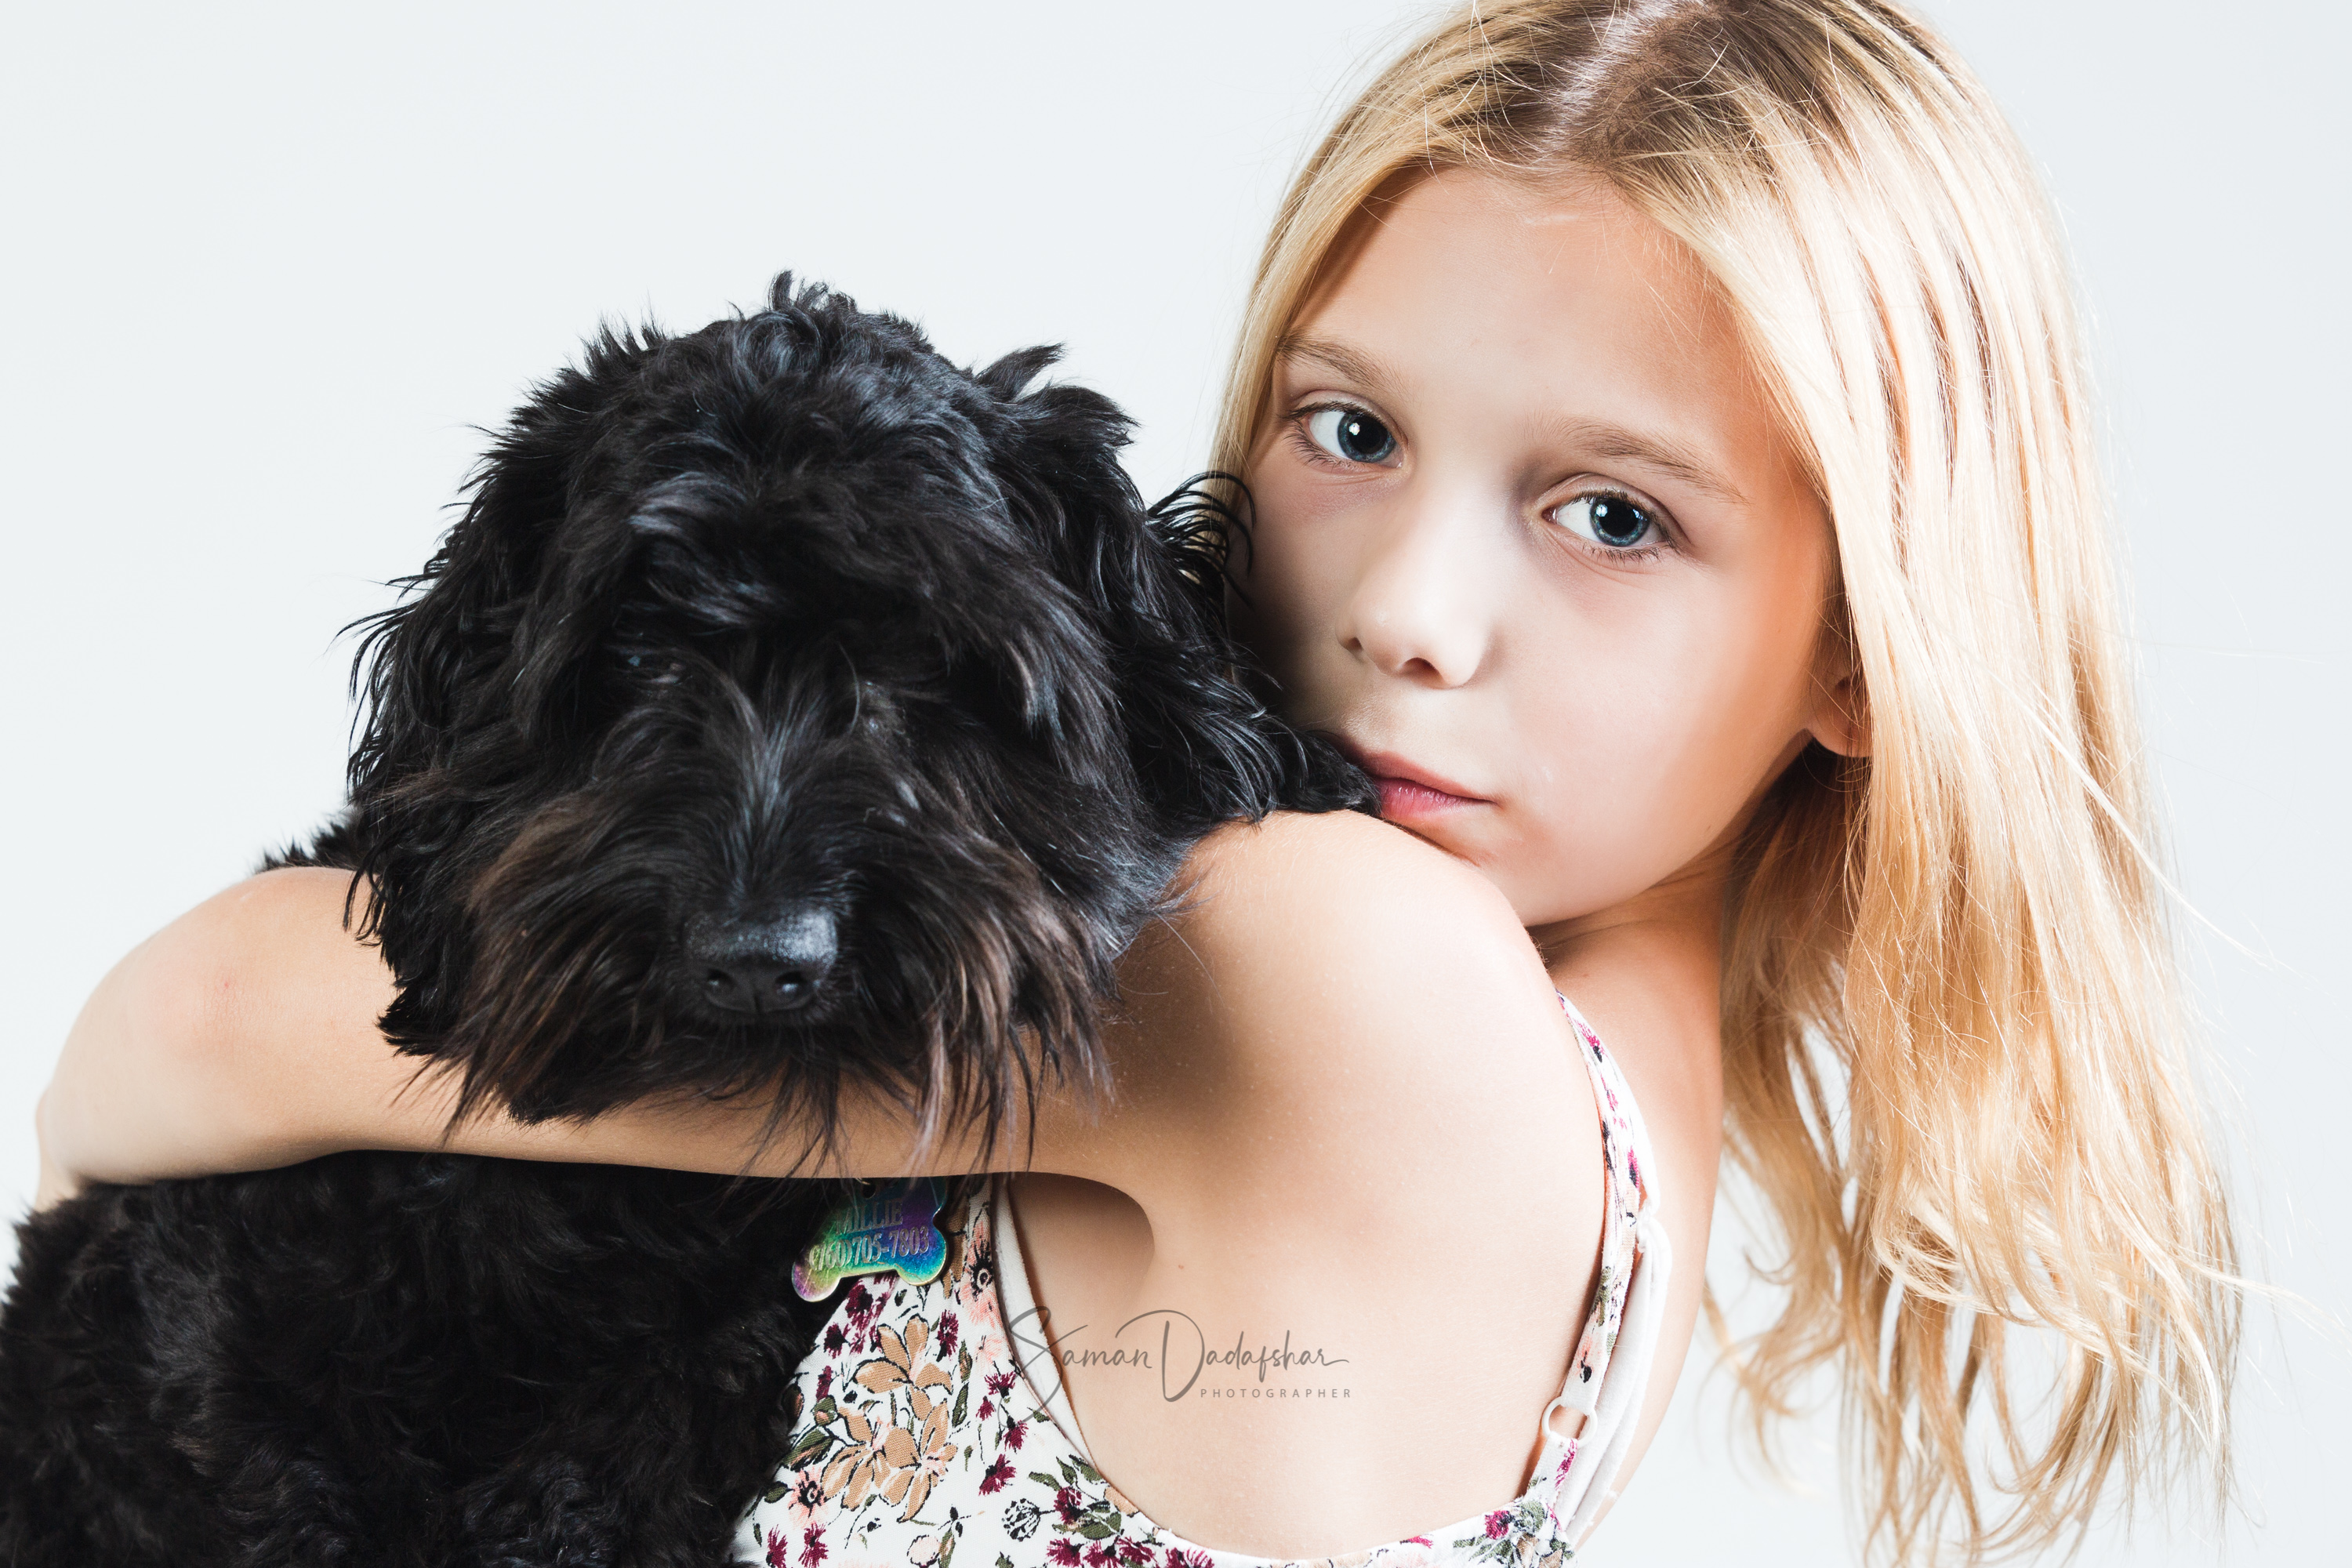 Teenager and her Puppy Studio Portrait Session